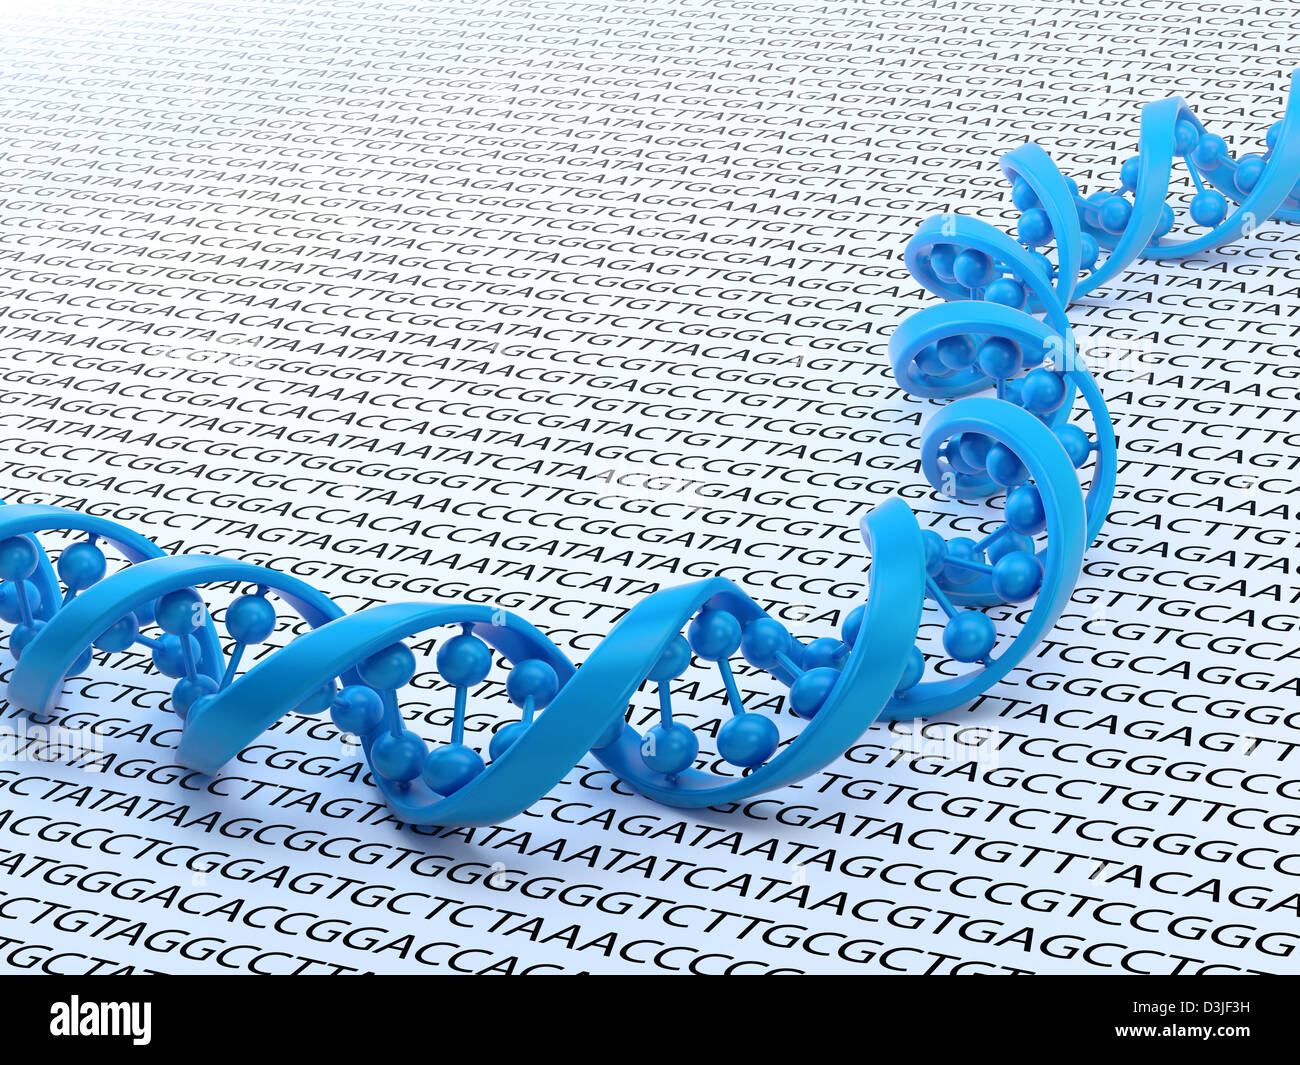 DNA strand sequencing concept illustration - Stock Image